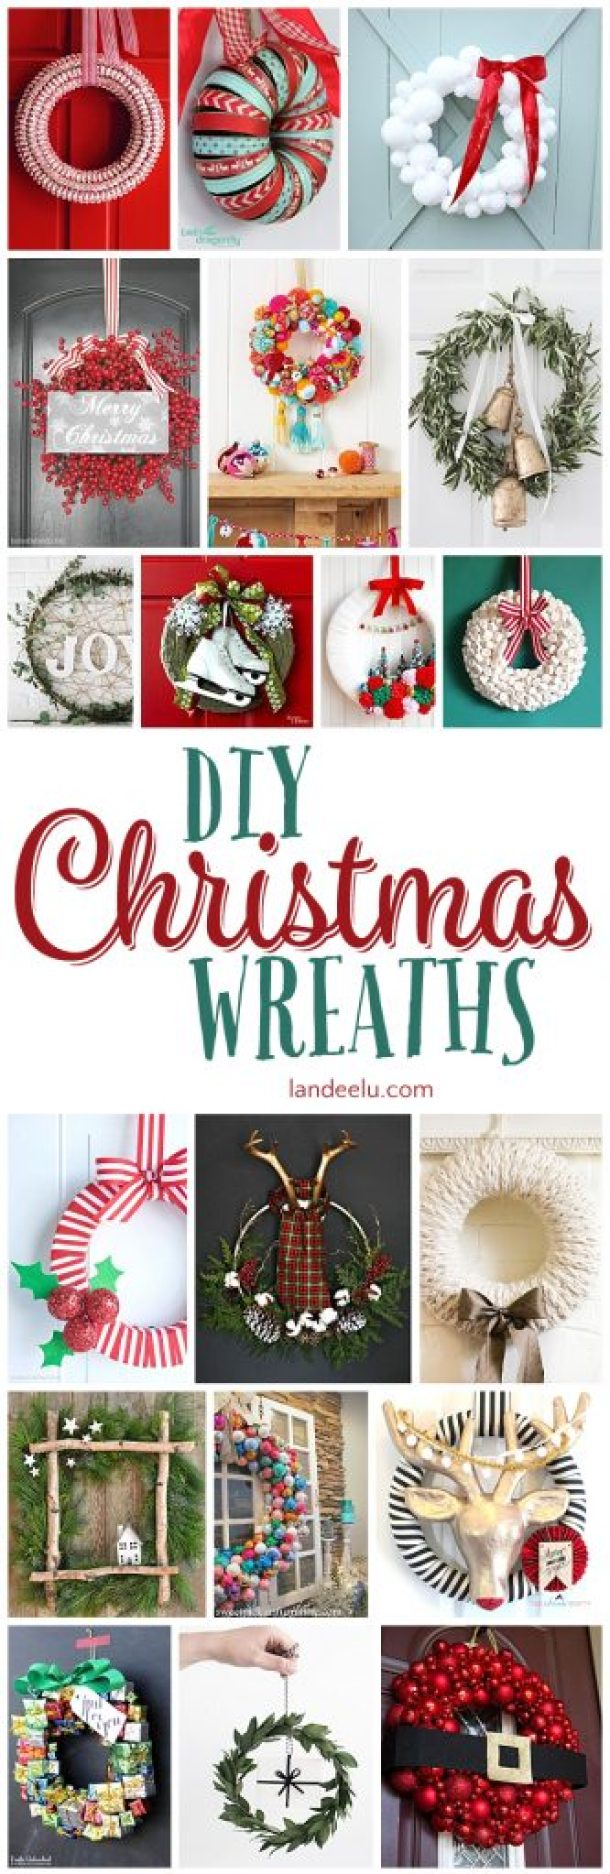 I love Christmas crafts! These DIY Christmas wreaths are awesome... I want to make some!